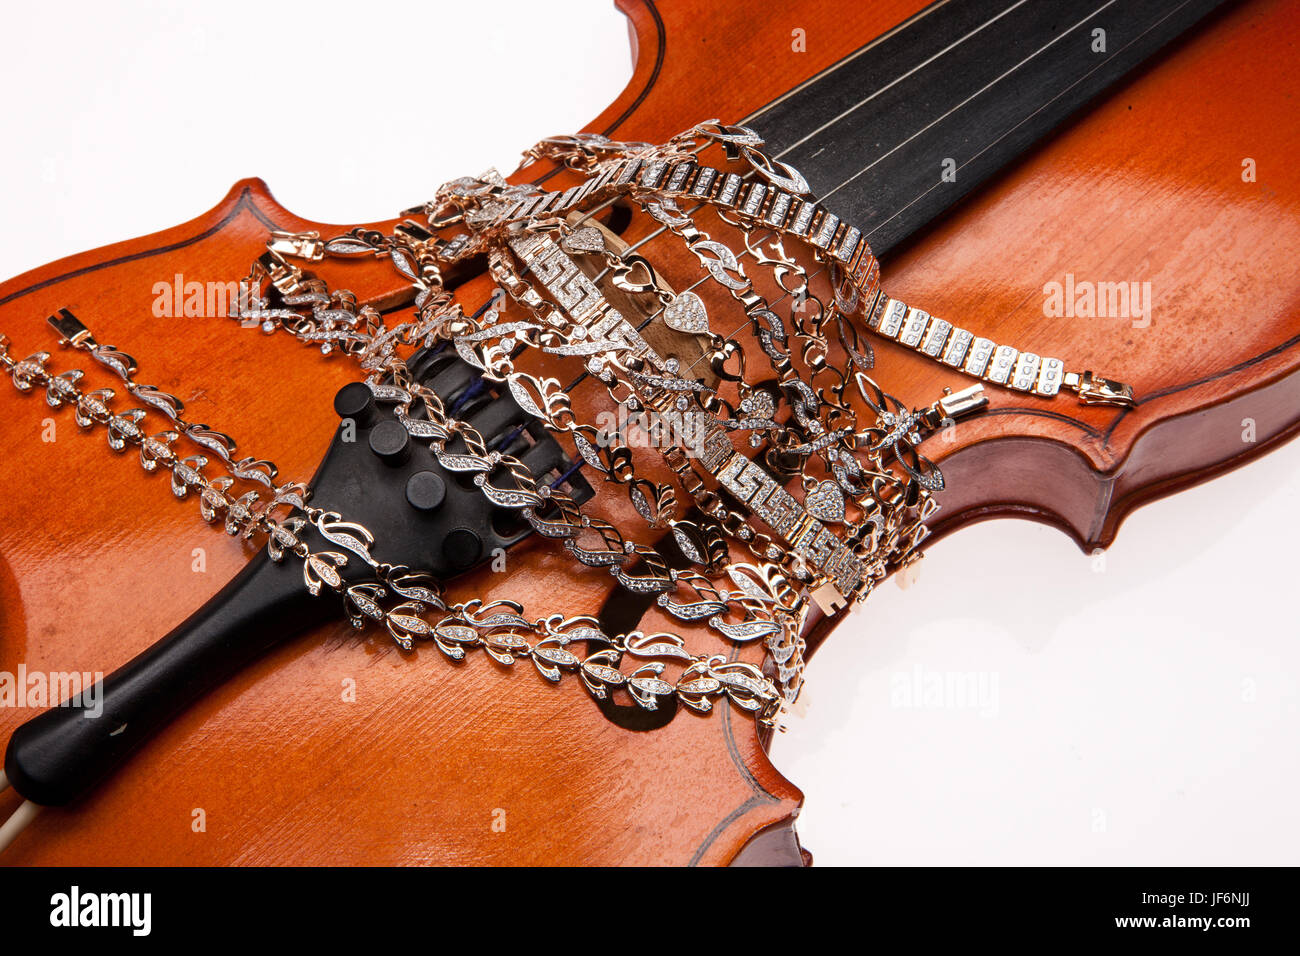 Golden Bracelets And Violin - Stock Image